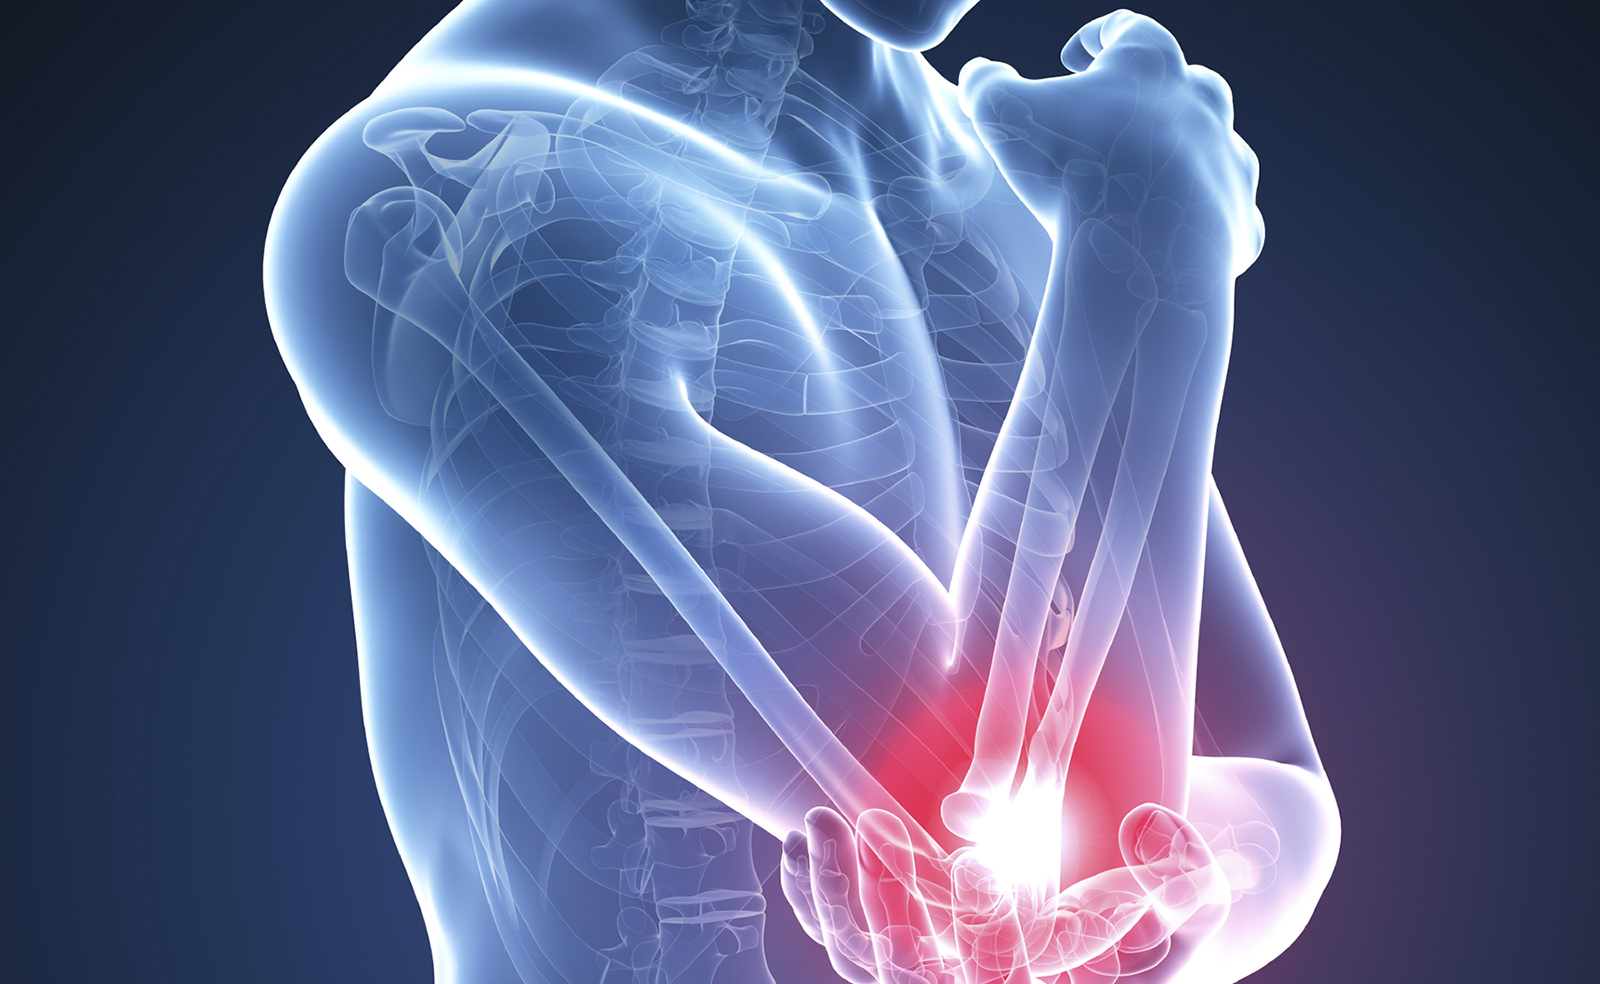 Don't let doctors fool you… Research shows the best treatment for tennis elbow is one they'll never recommend.